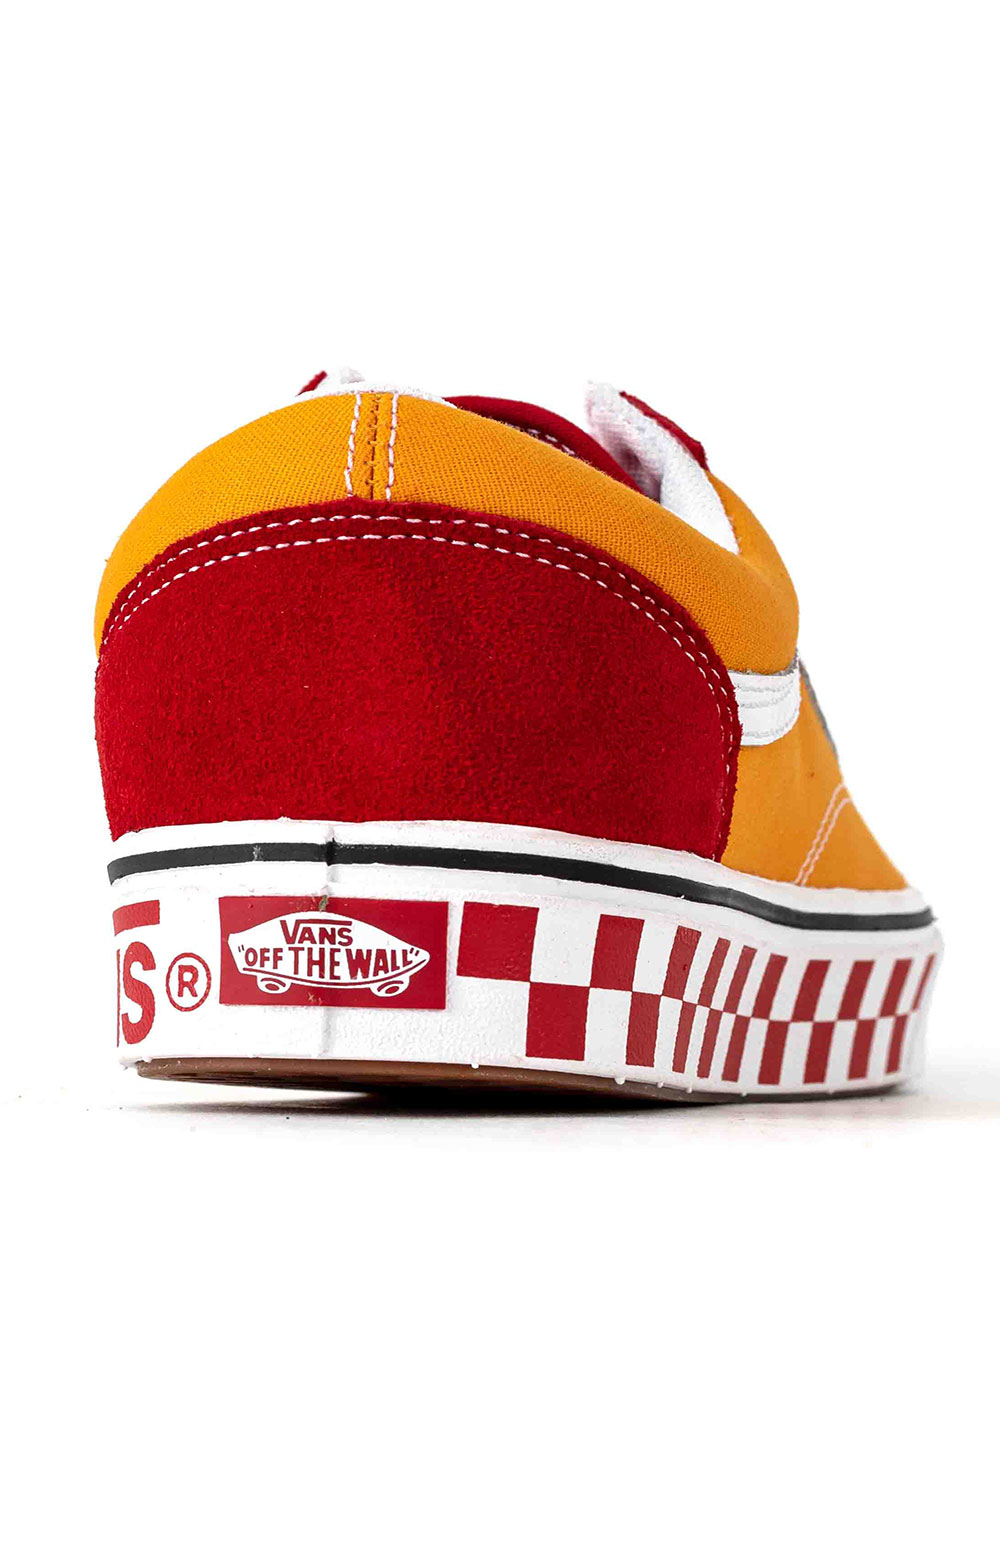 (WMAWX4) Tape Mix Old Skool ComfyCush Shoes - Red 5